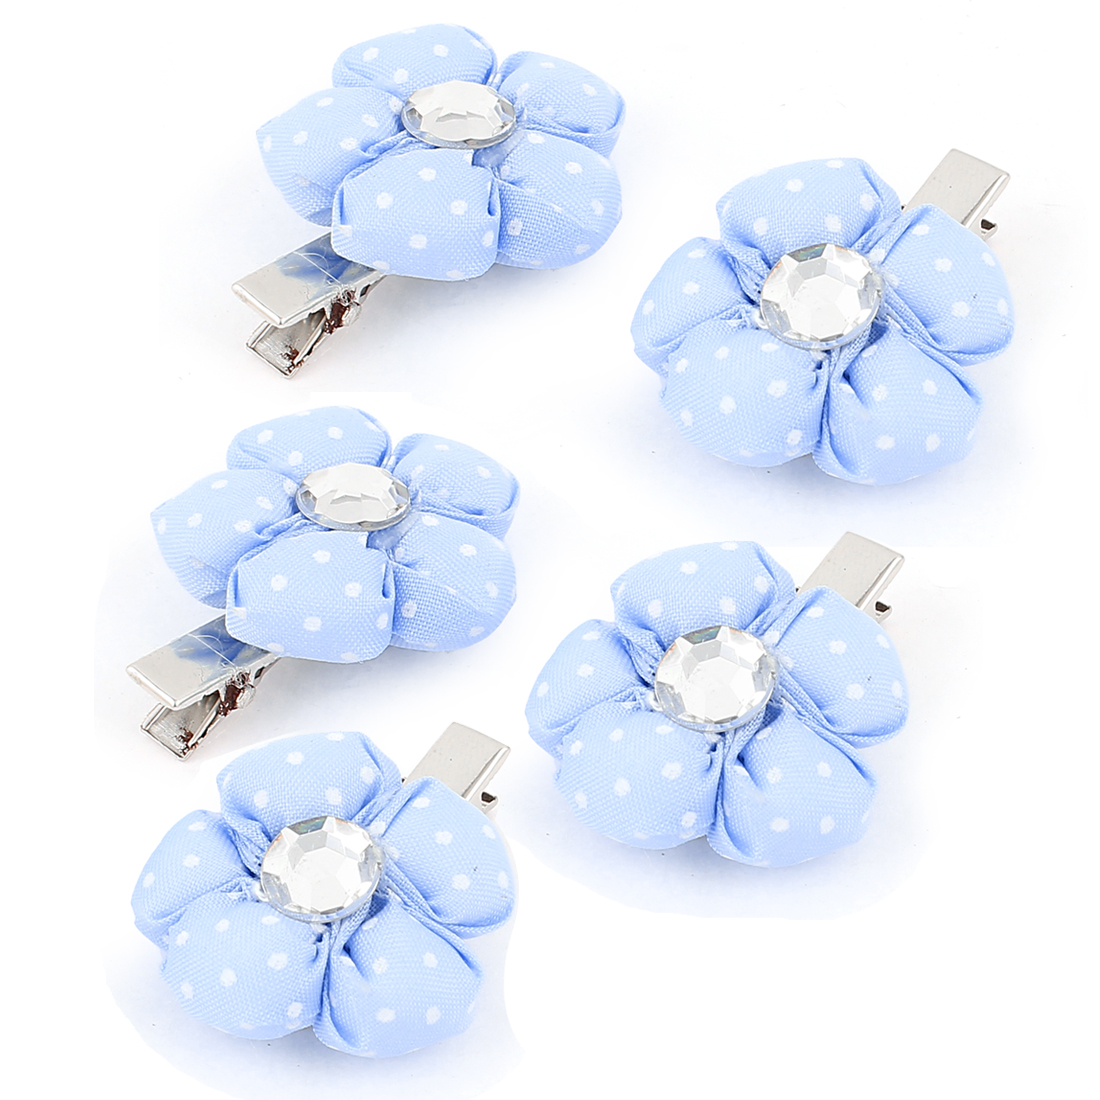 Pet Dog Pumpkin Shaped Hair Grooming Hairpin Headdress Clips 5 Pcs Blue